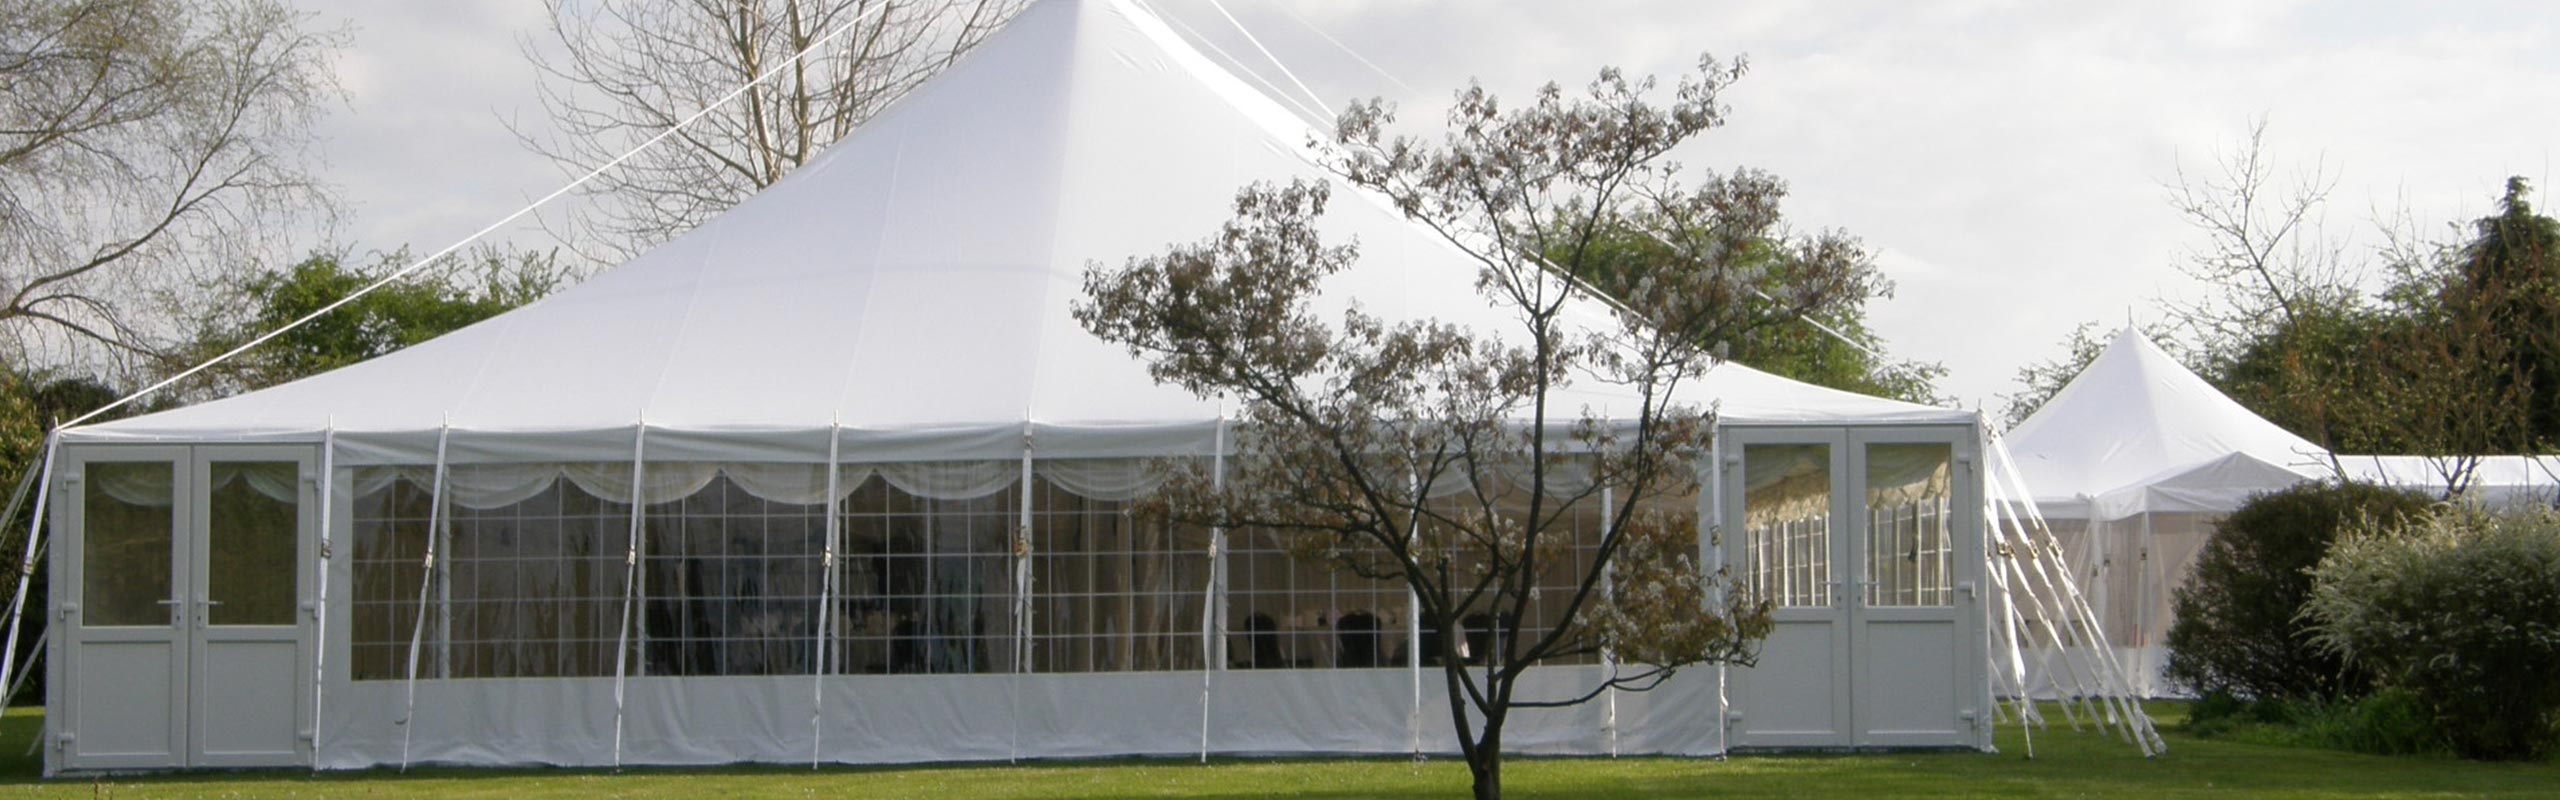 Permanent Marquee Structures